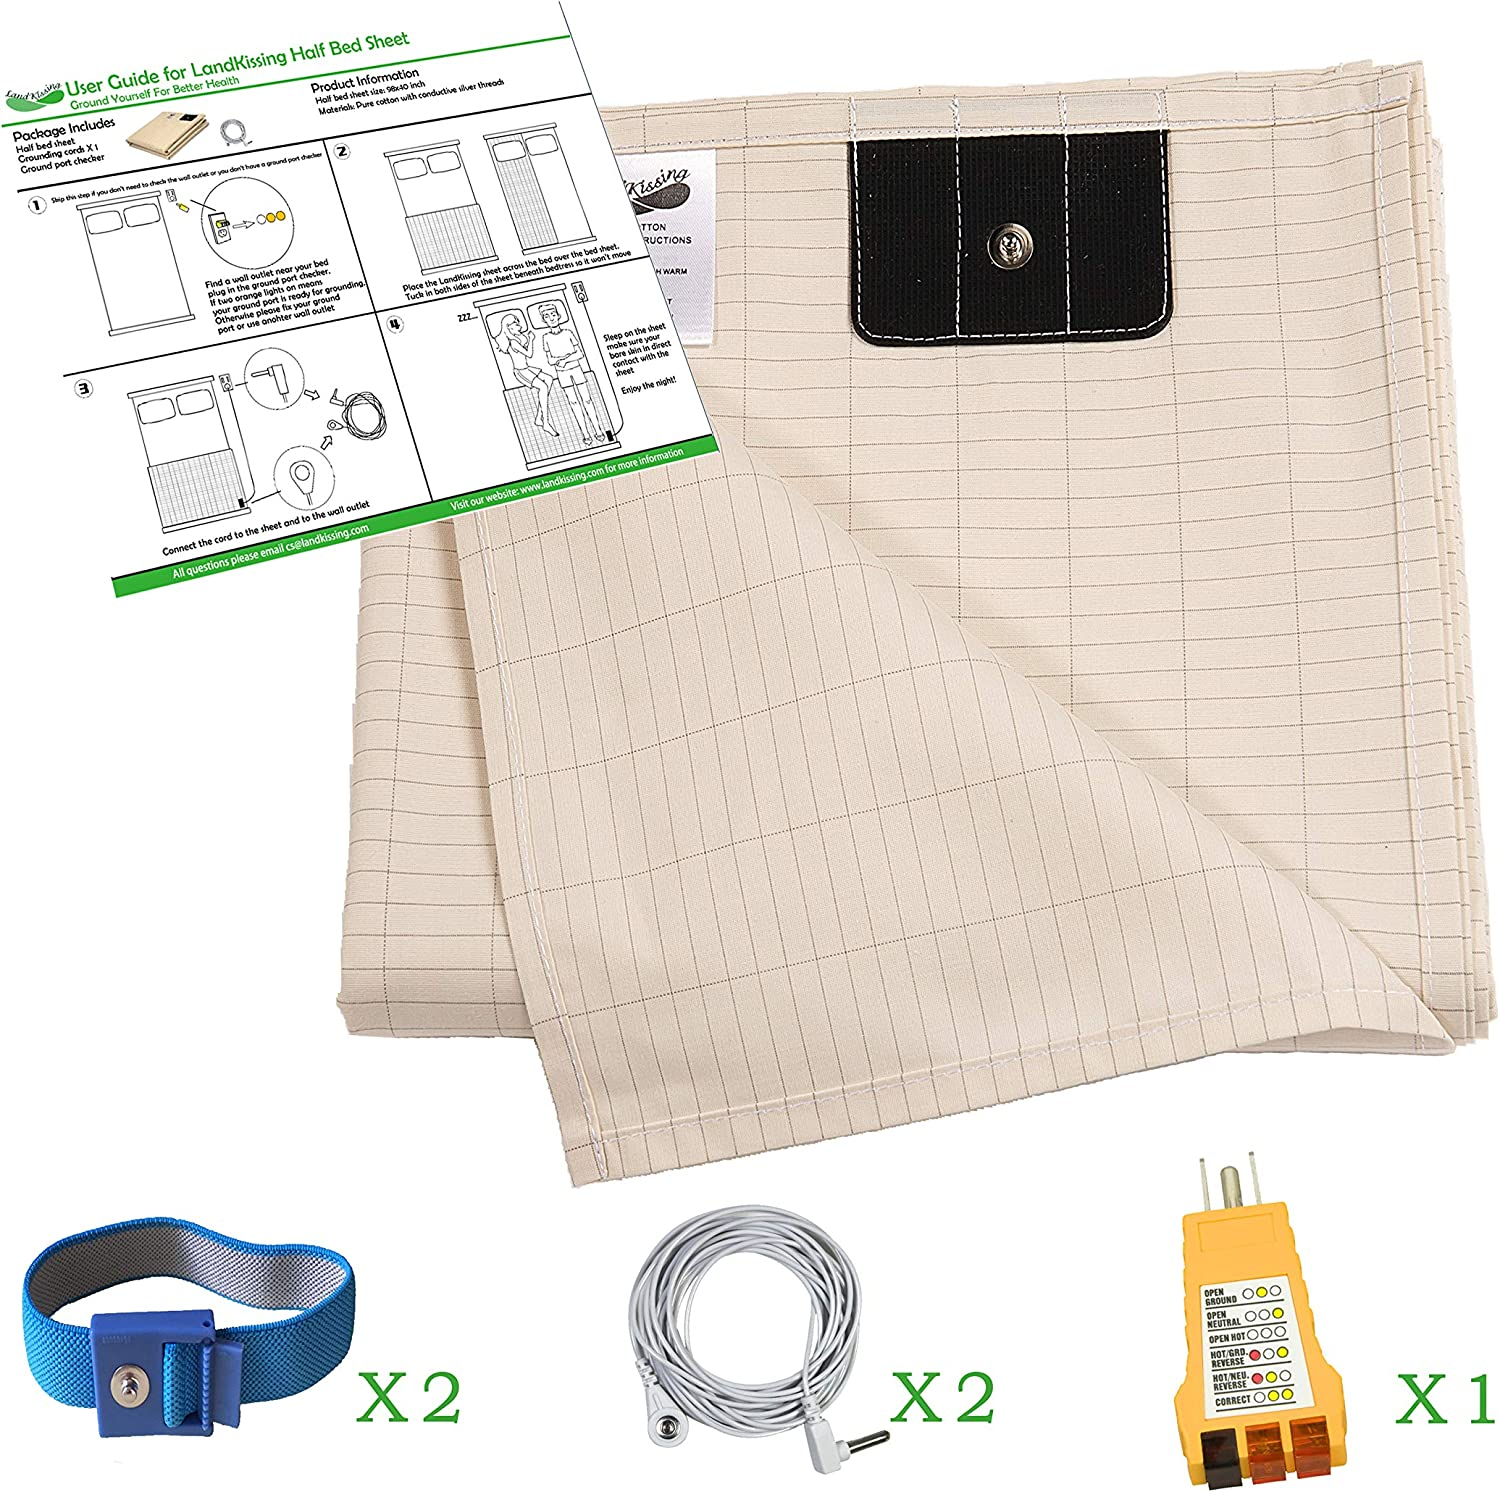 LandKissing Grounding Half Bed Sheet (Size 98 x39 ) Beige for Healthy Earthing Energy with 1 Ground Checker 2 Straight Cords and 2 Grounding Bracelets Fits Full Queen and King Size